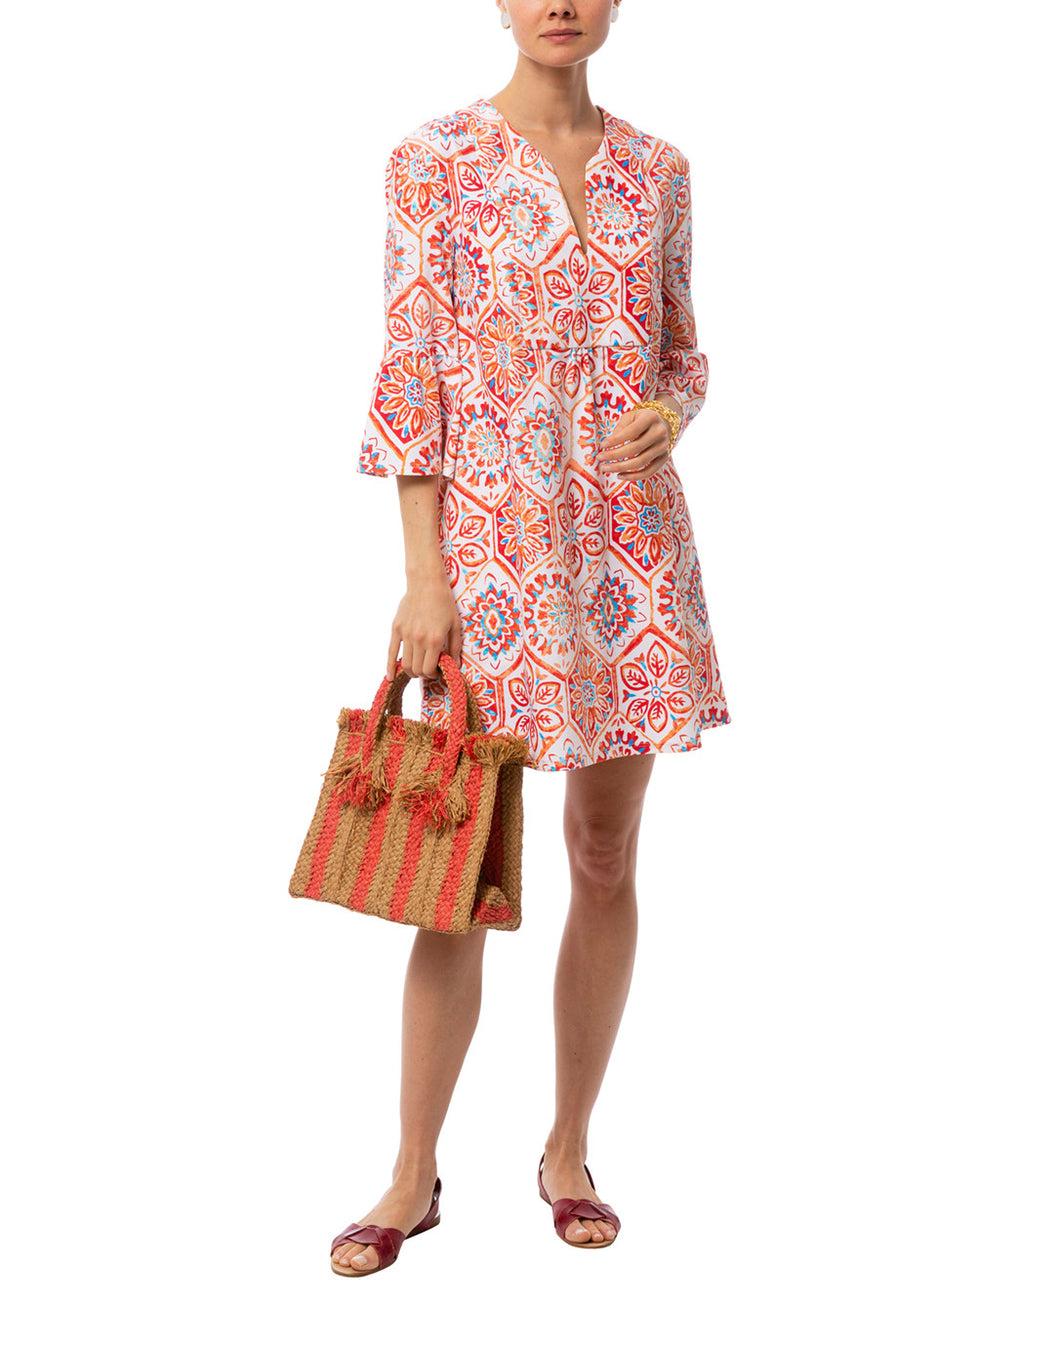 Kerry Dress in Mosaic Tile Coral by Jude Connally